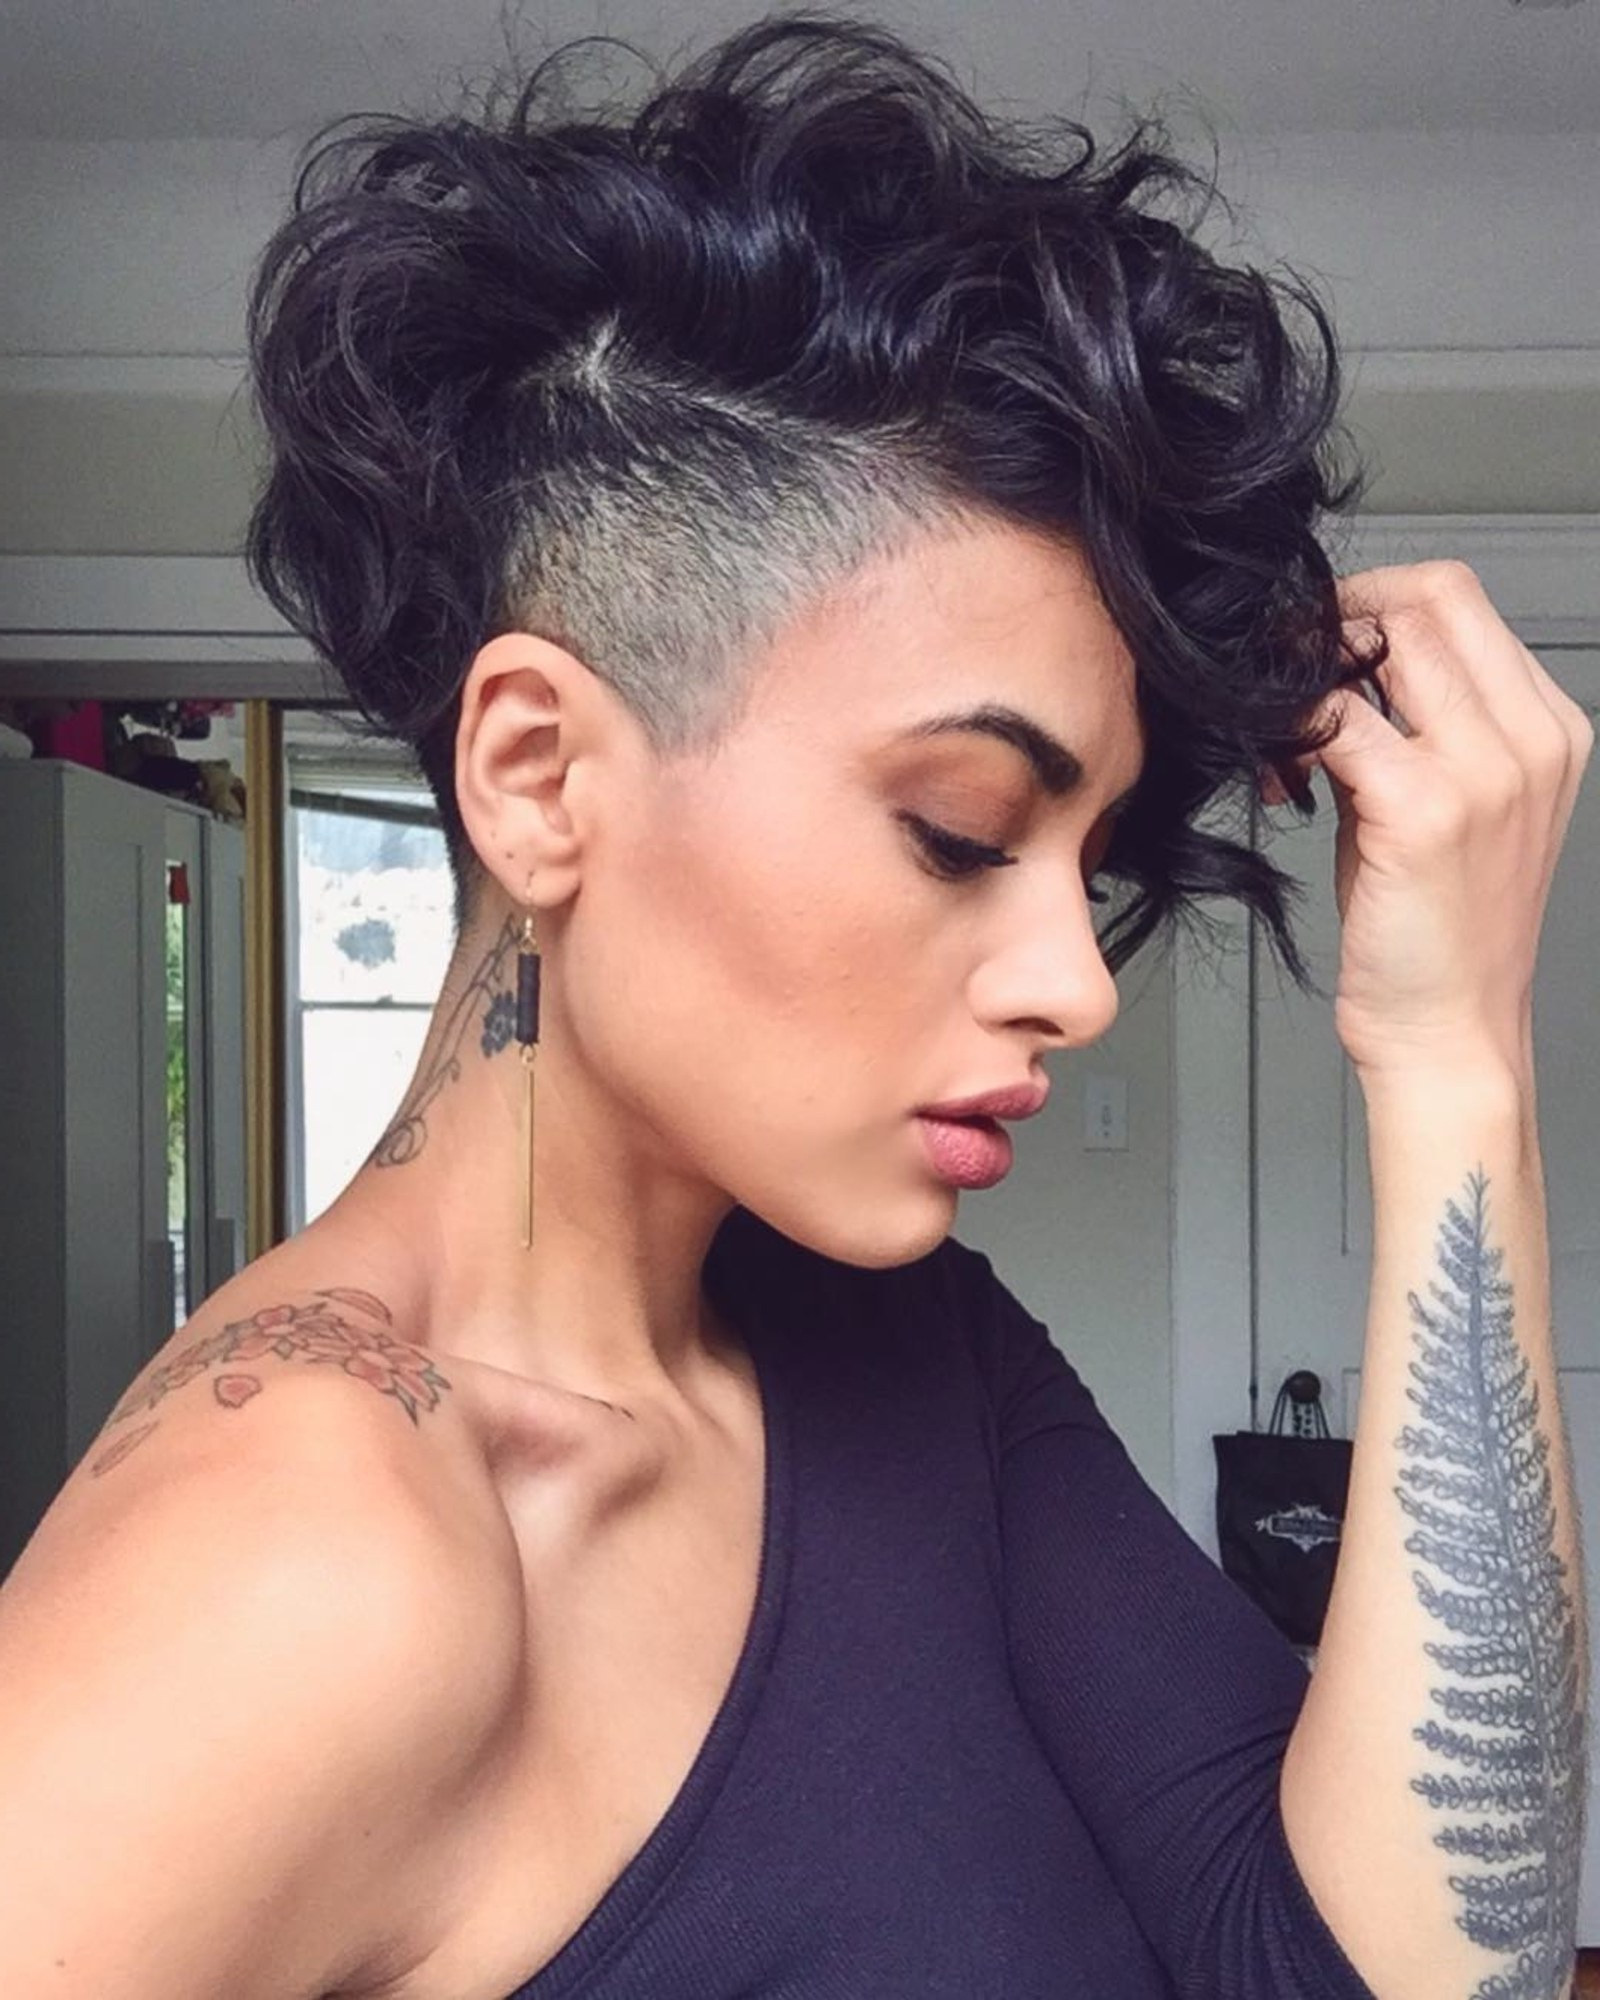 28 Curly Pixie Cuts That Are Perfect For Fall 2017 – Glamour Regarding Curly Black Tapered Pixie Hairstyles (View 7 of 20)